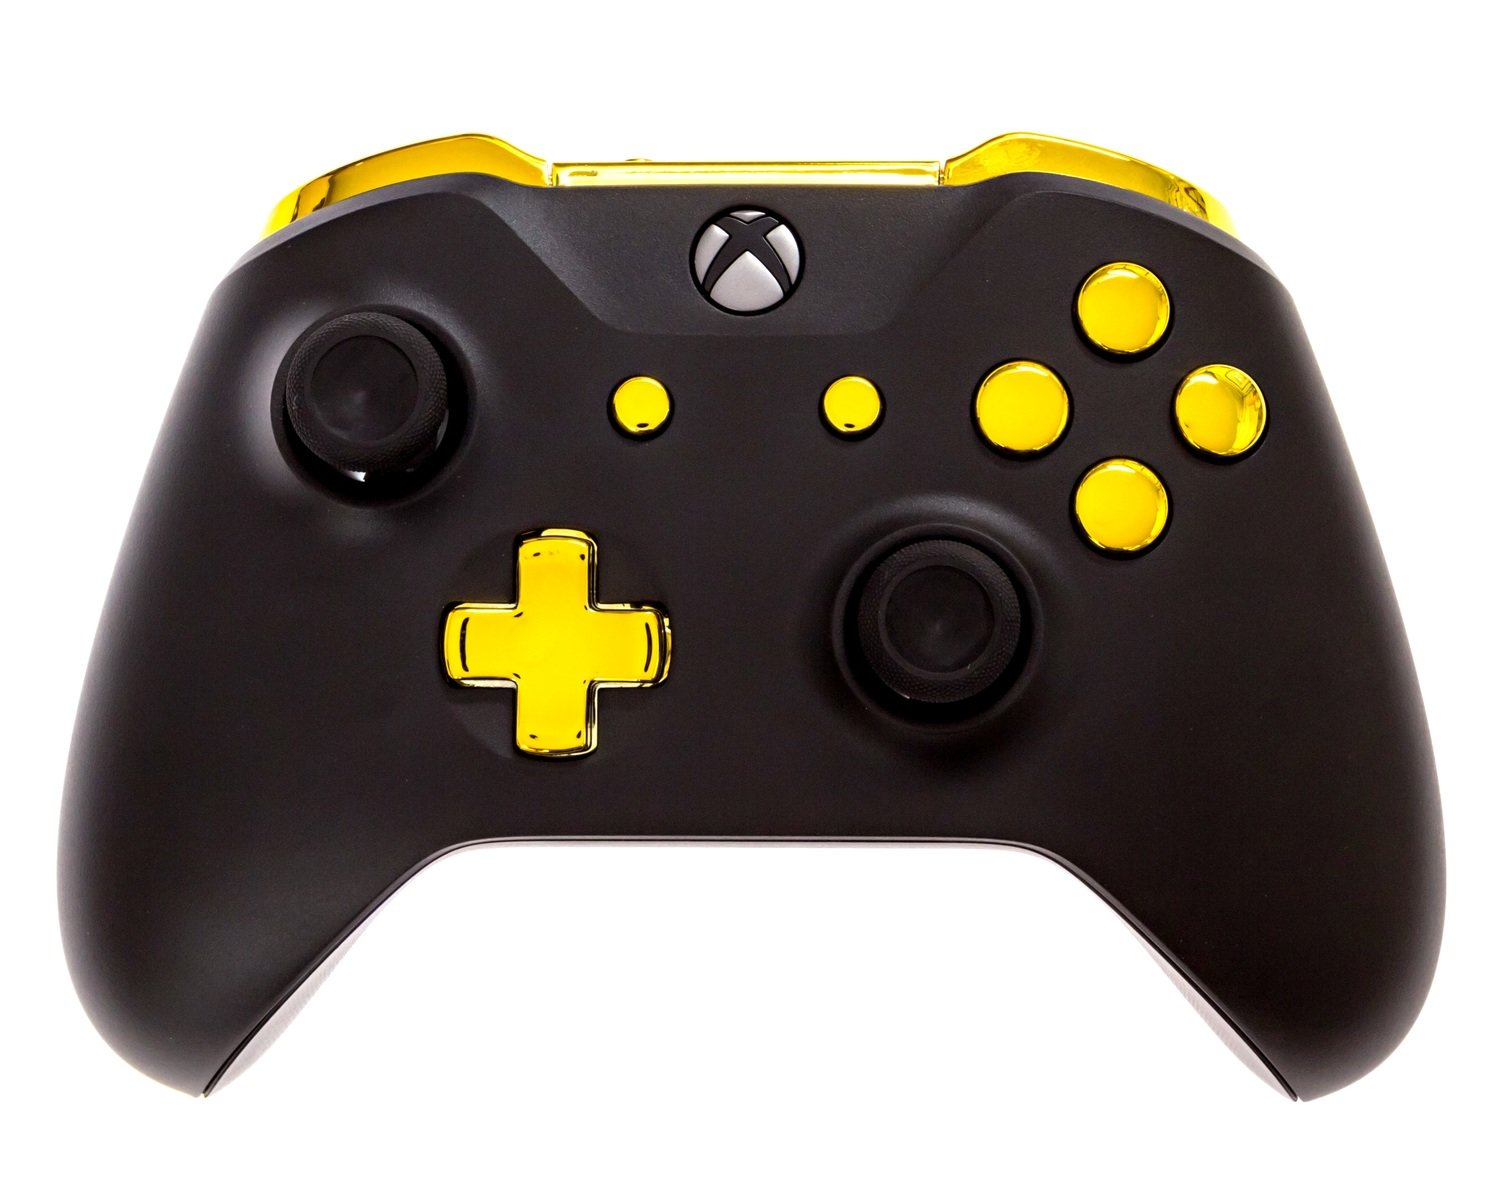 10,000 Mode Modded Controllers Xbox One S Mod Controller Xb1 Gold Out